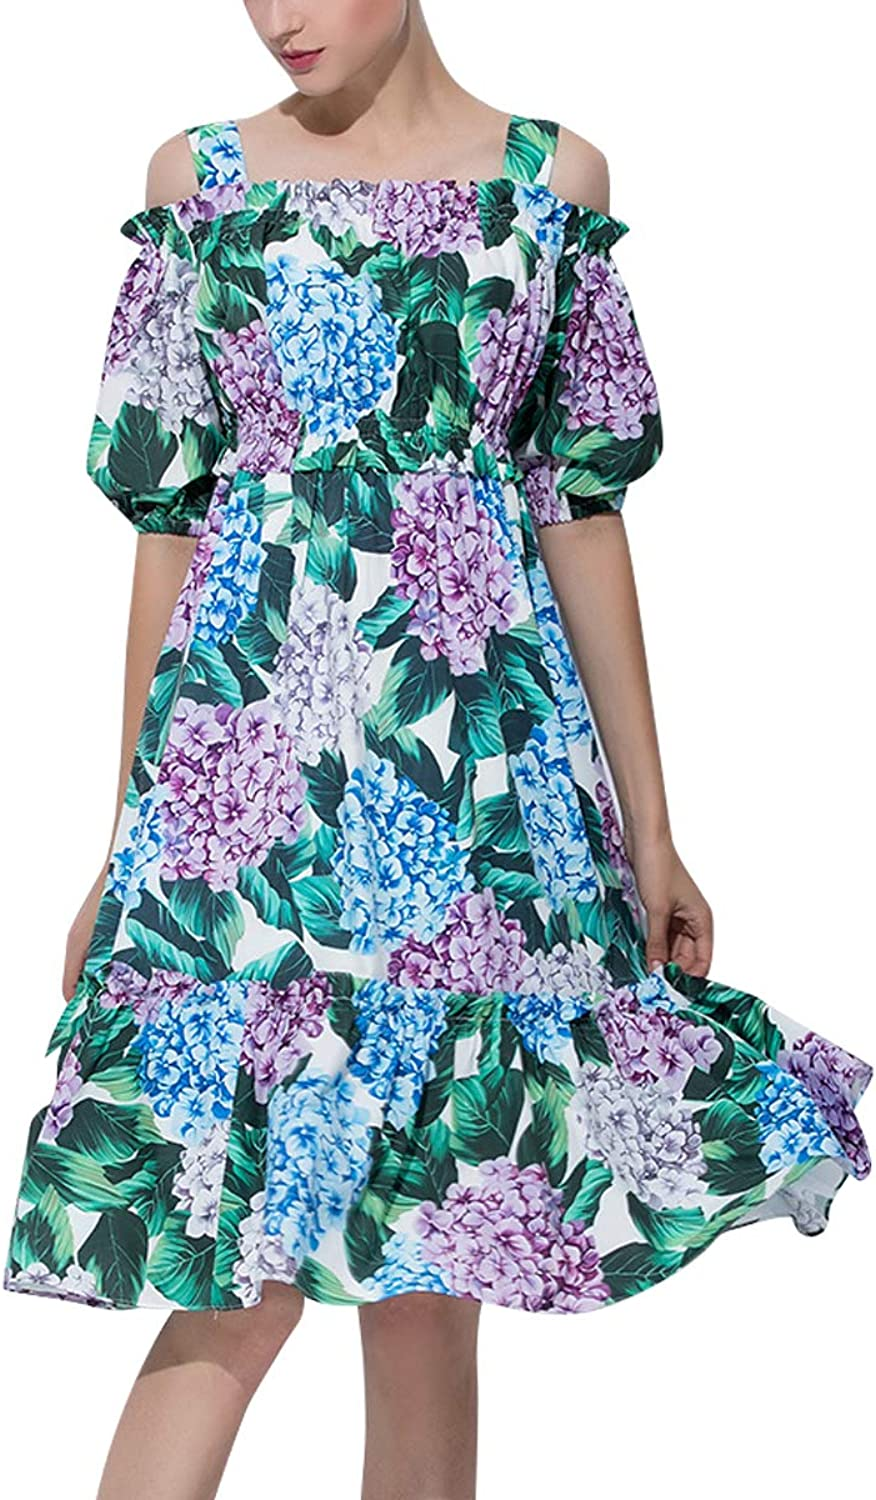 Cold Shoulder Floral Print Short Sleeve Ruffles Women Beach Party Swing Dress